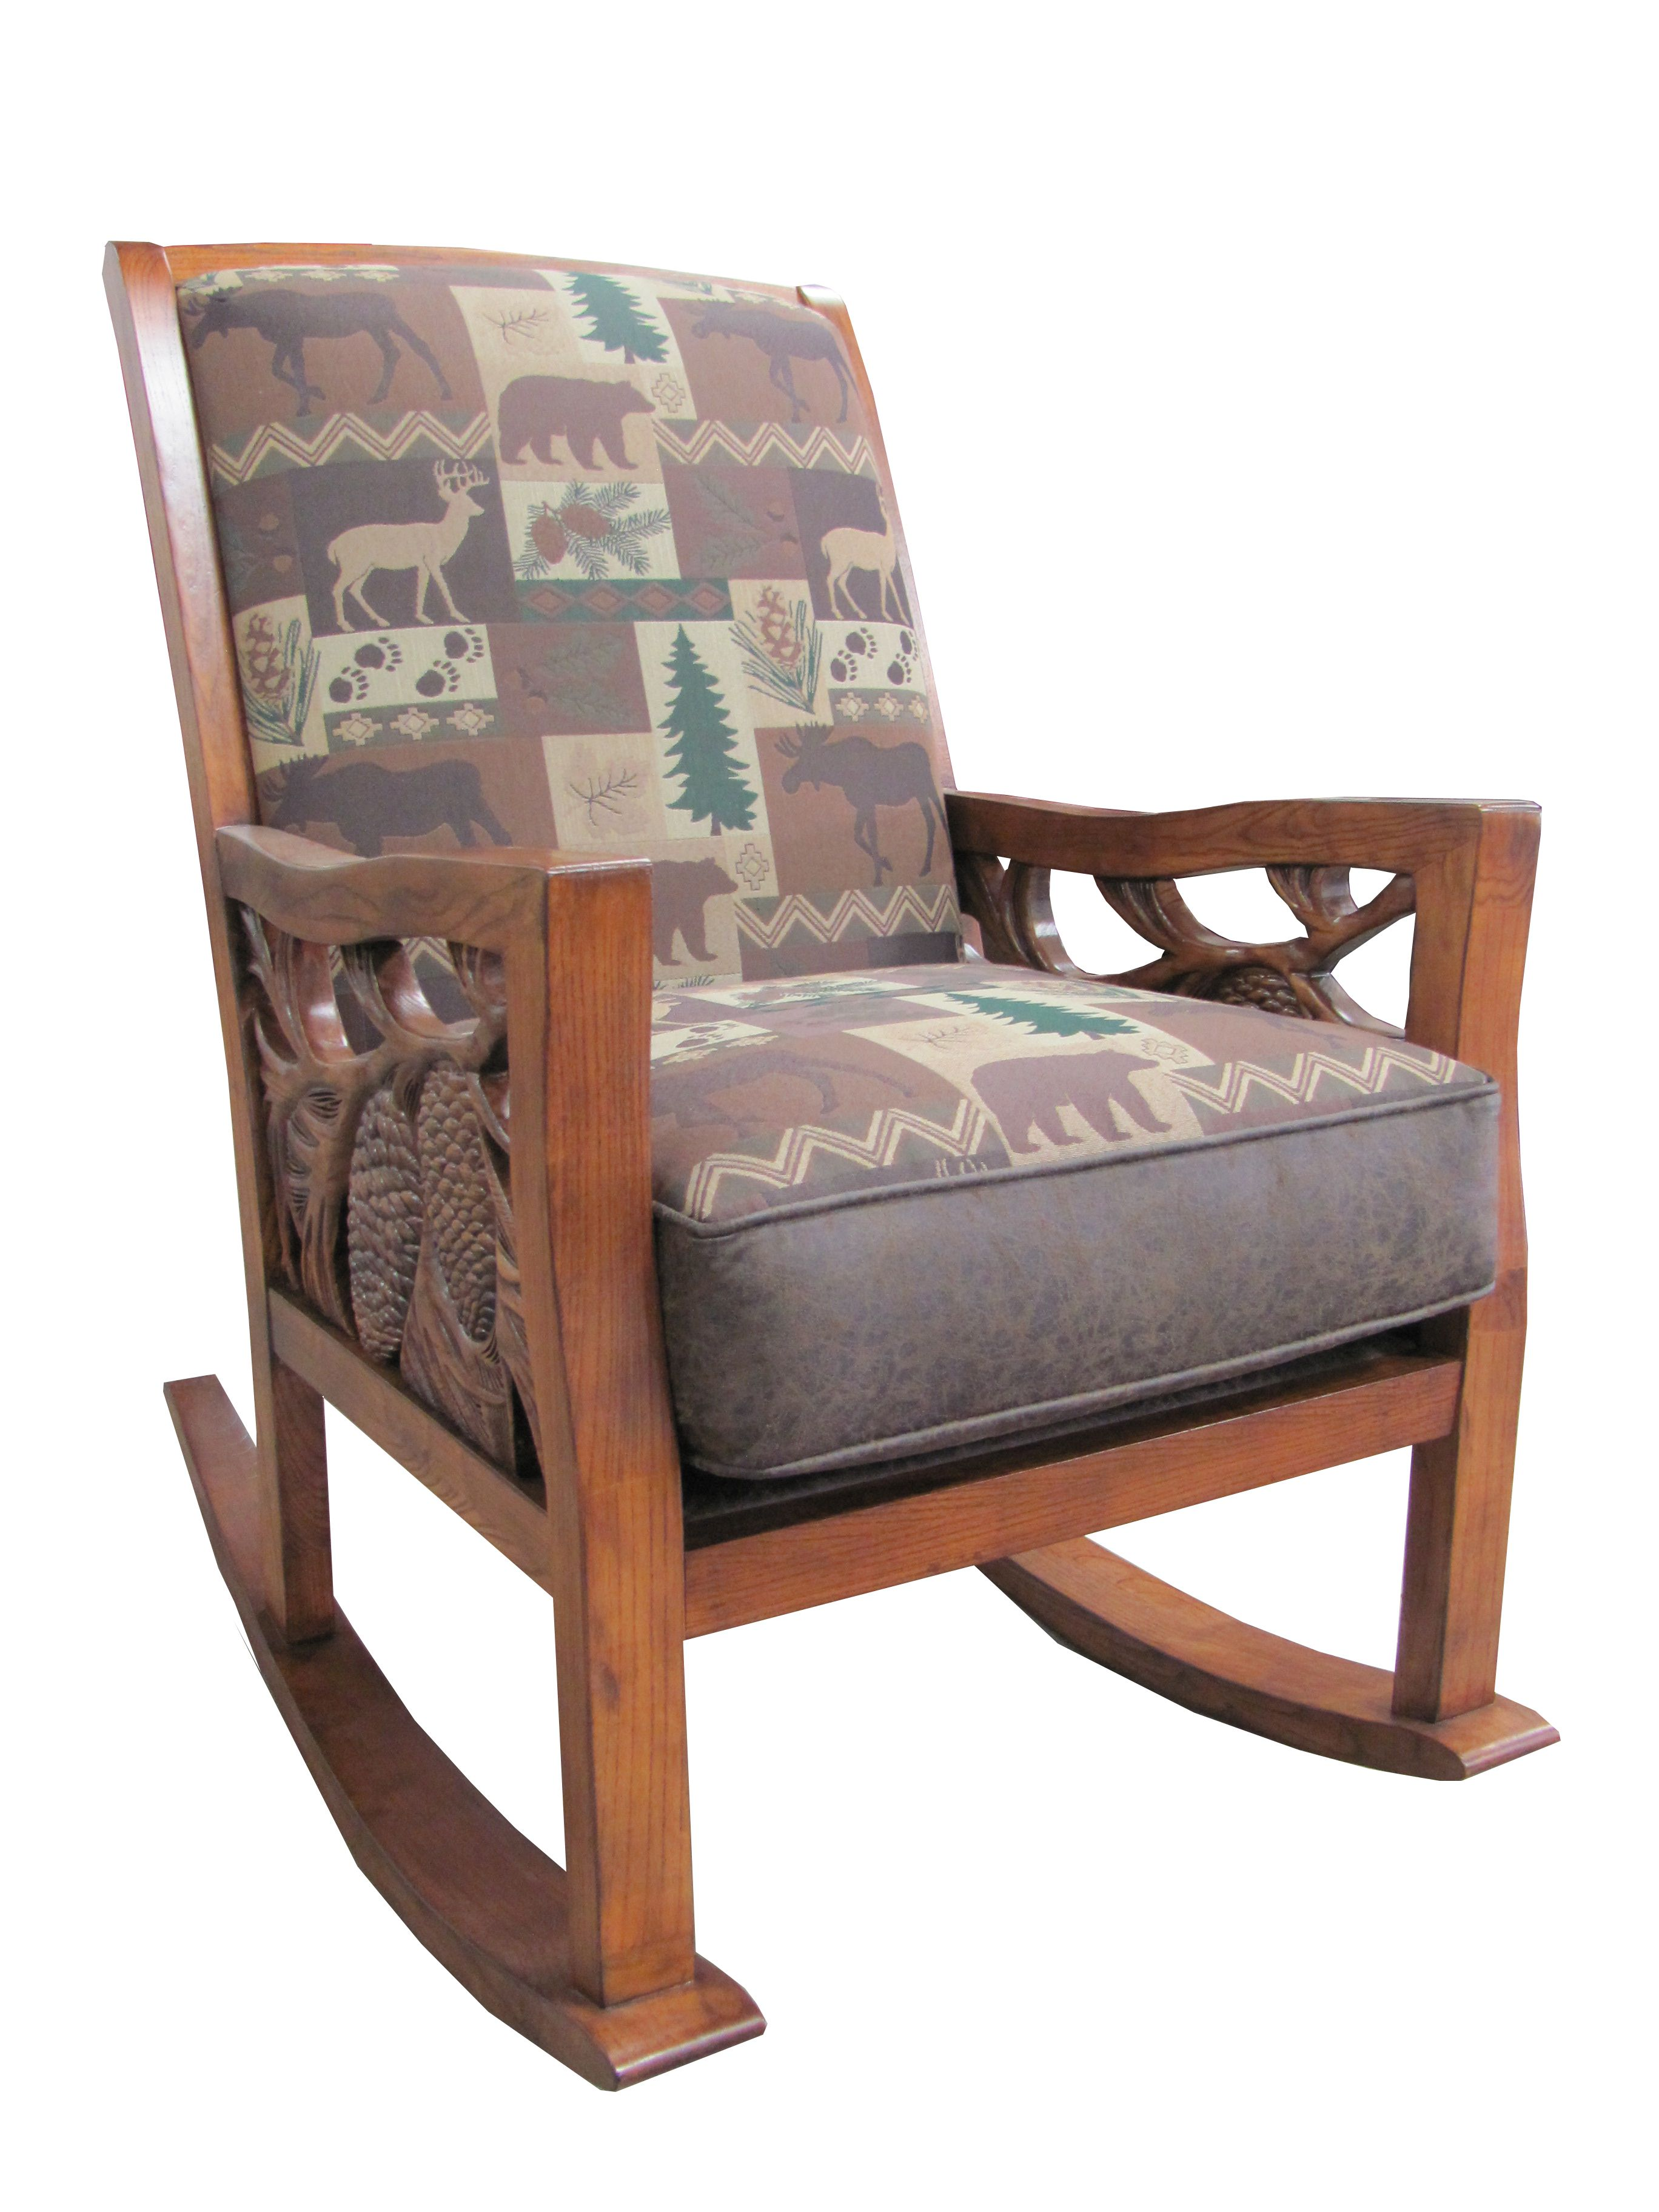 1984 21 Woodland Marshfield Furniture Available At Holman House Furniture  In Grand Junction, CO